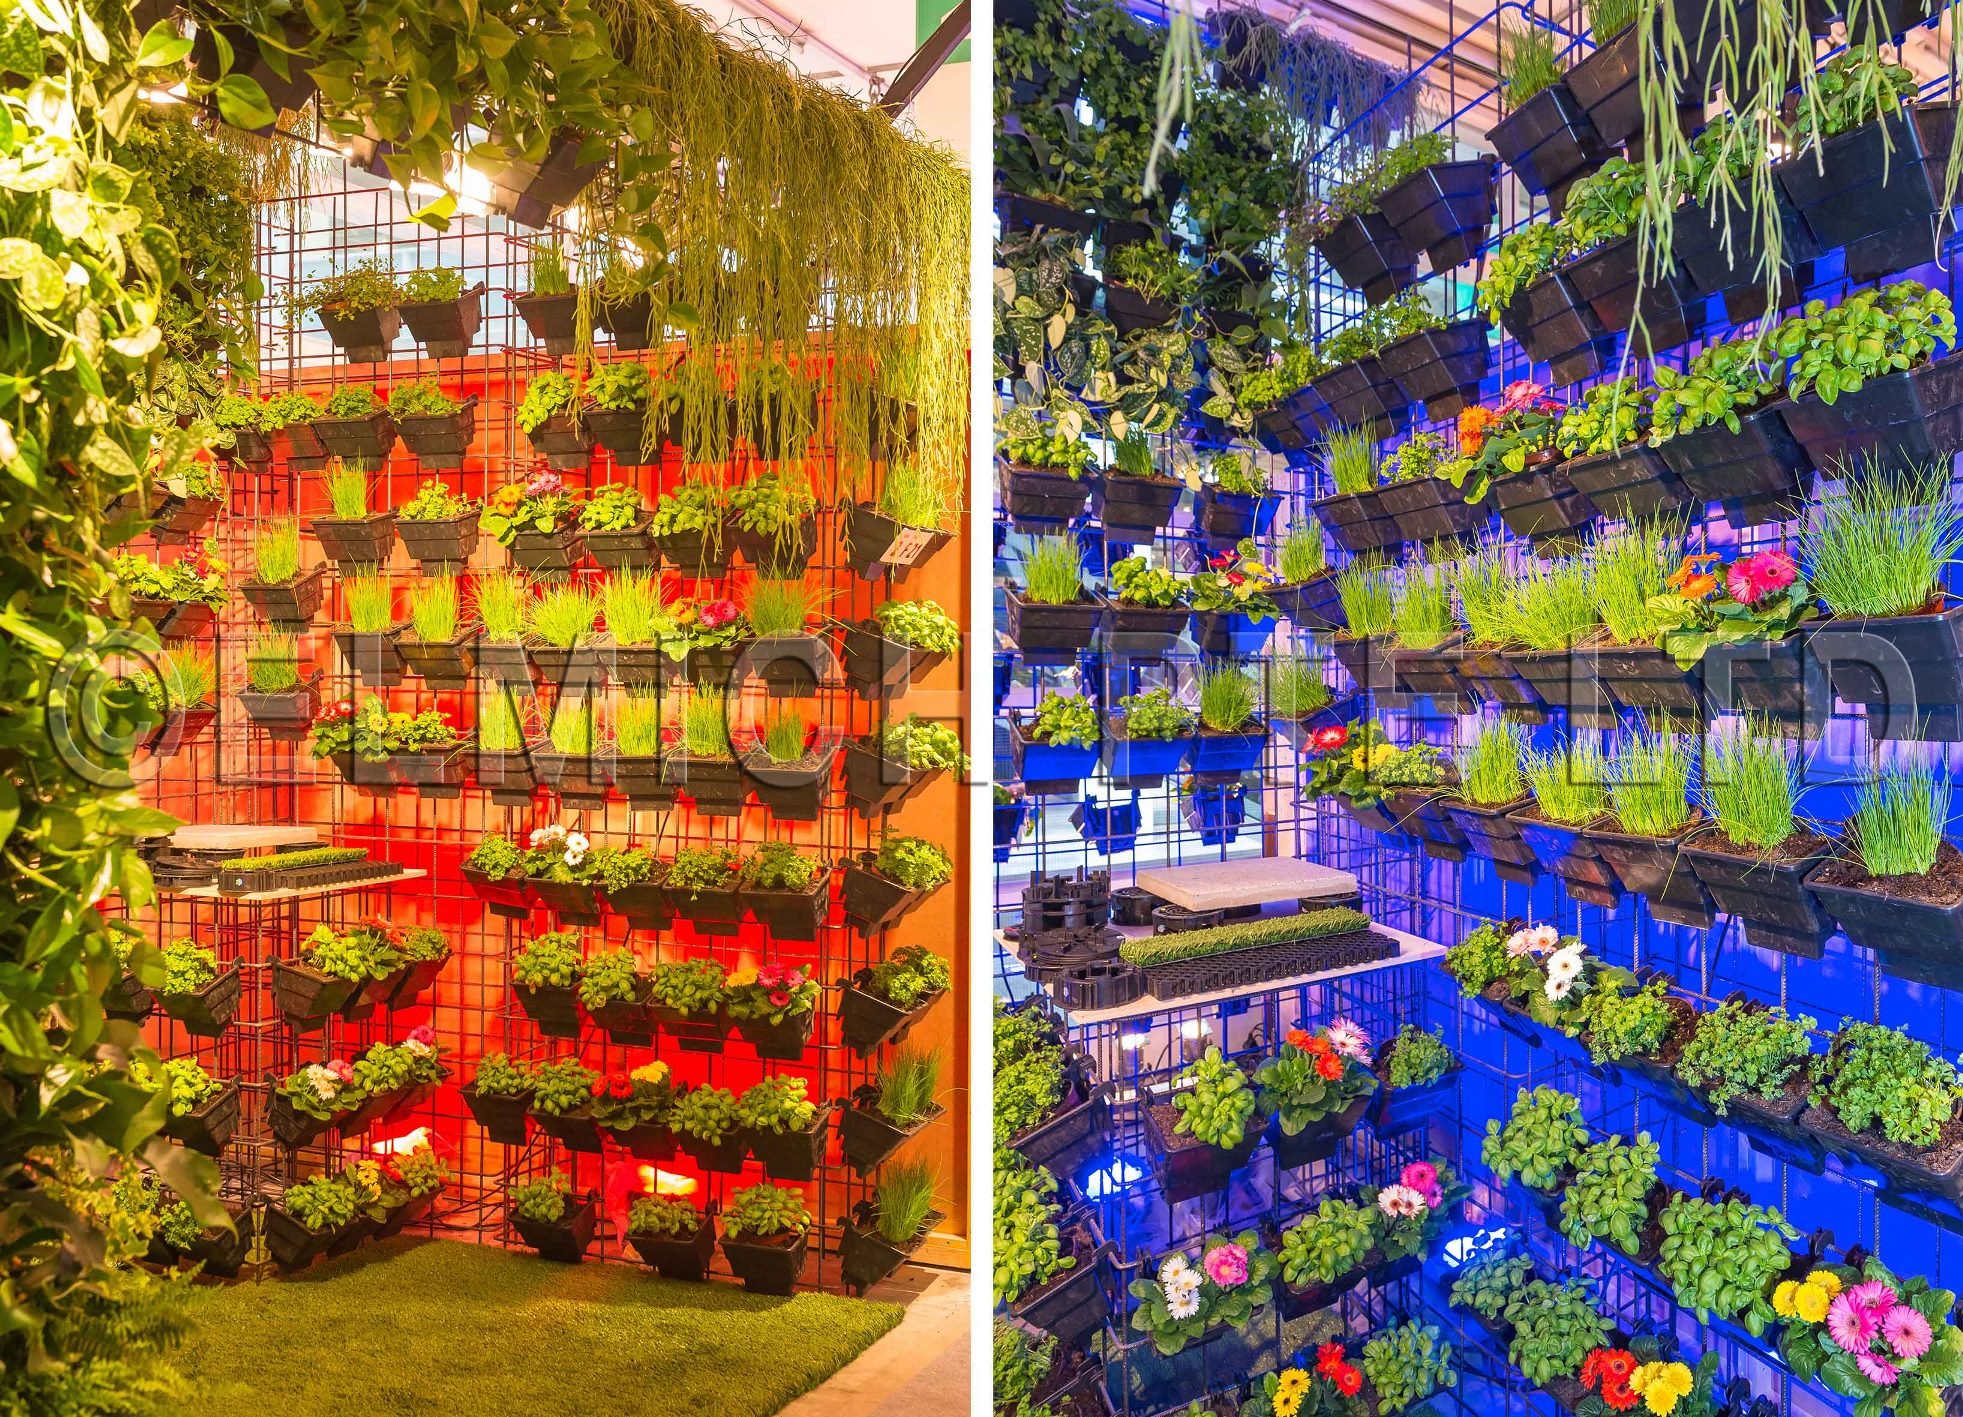 giardina 2015 is one of europes leading indoor events showcasing exciting current trends in garden design this 5 day exposition was held from 11 to 15